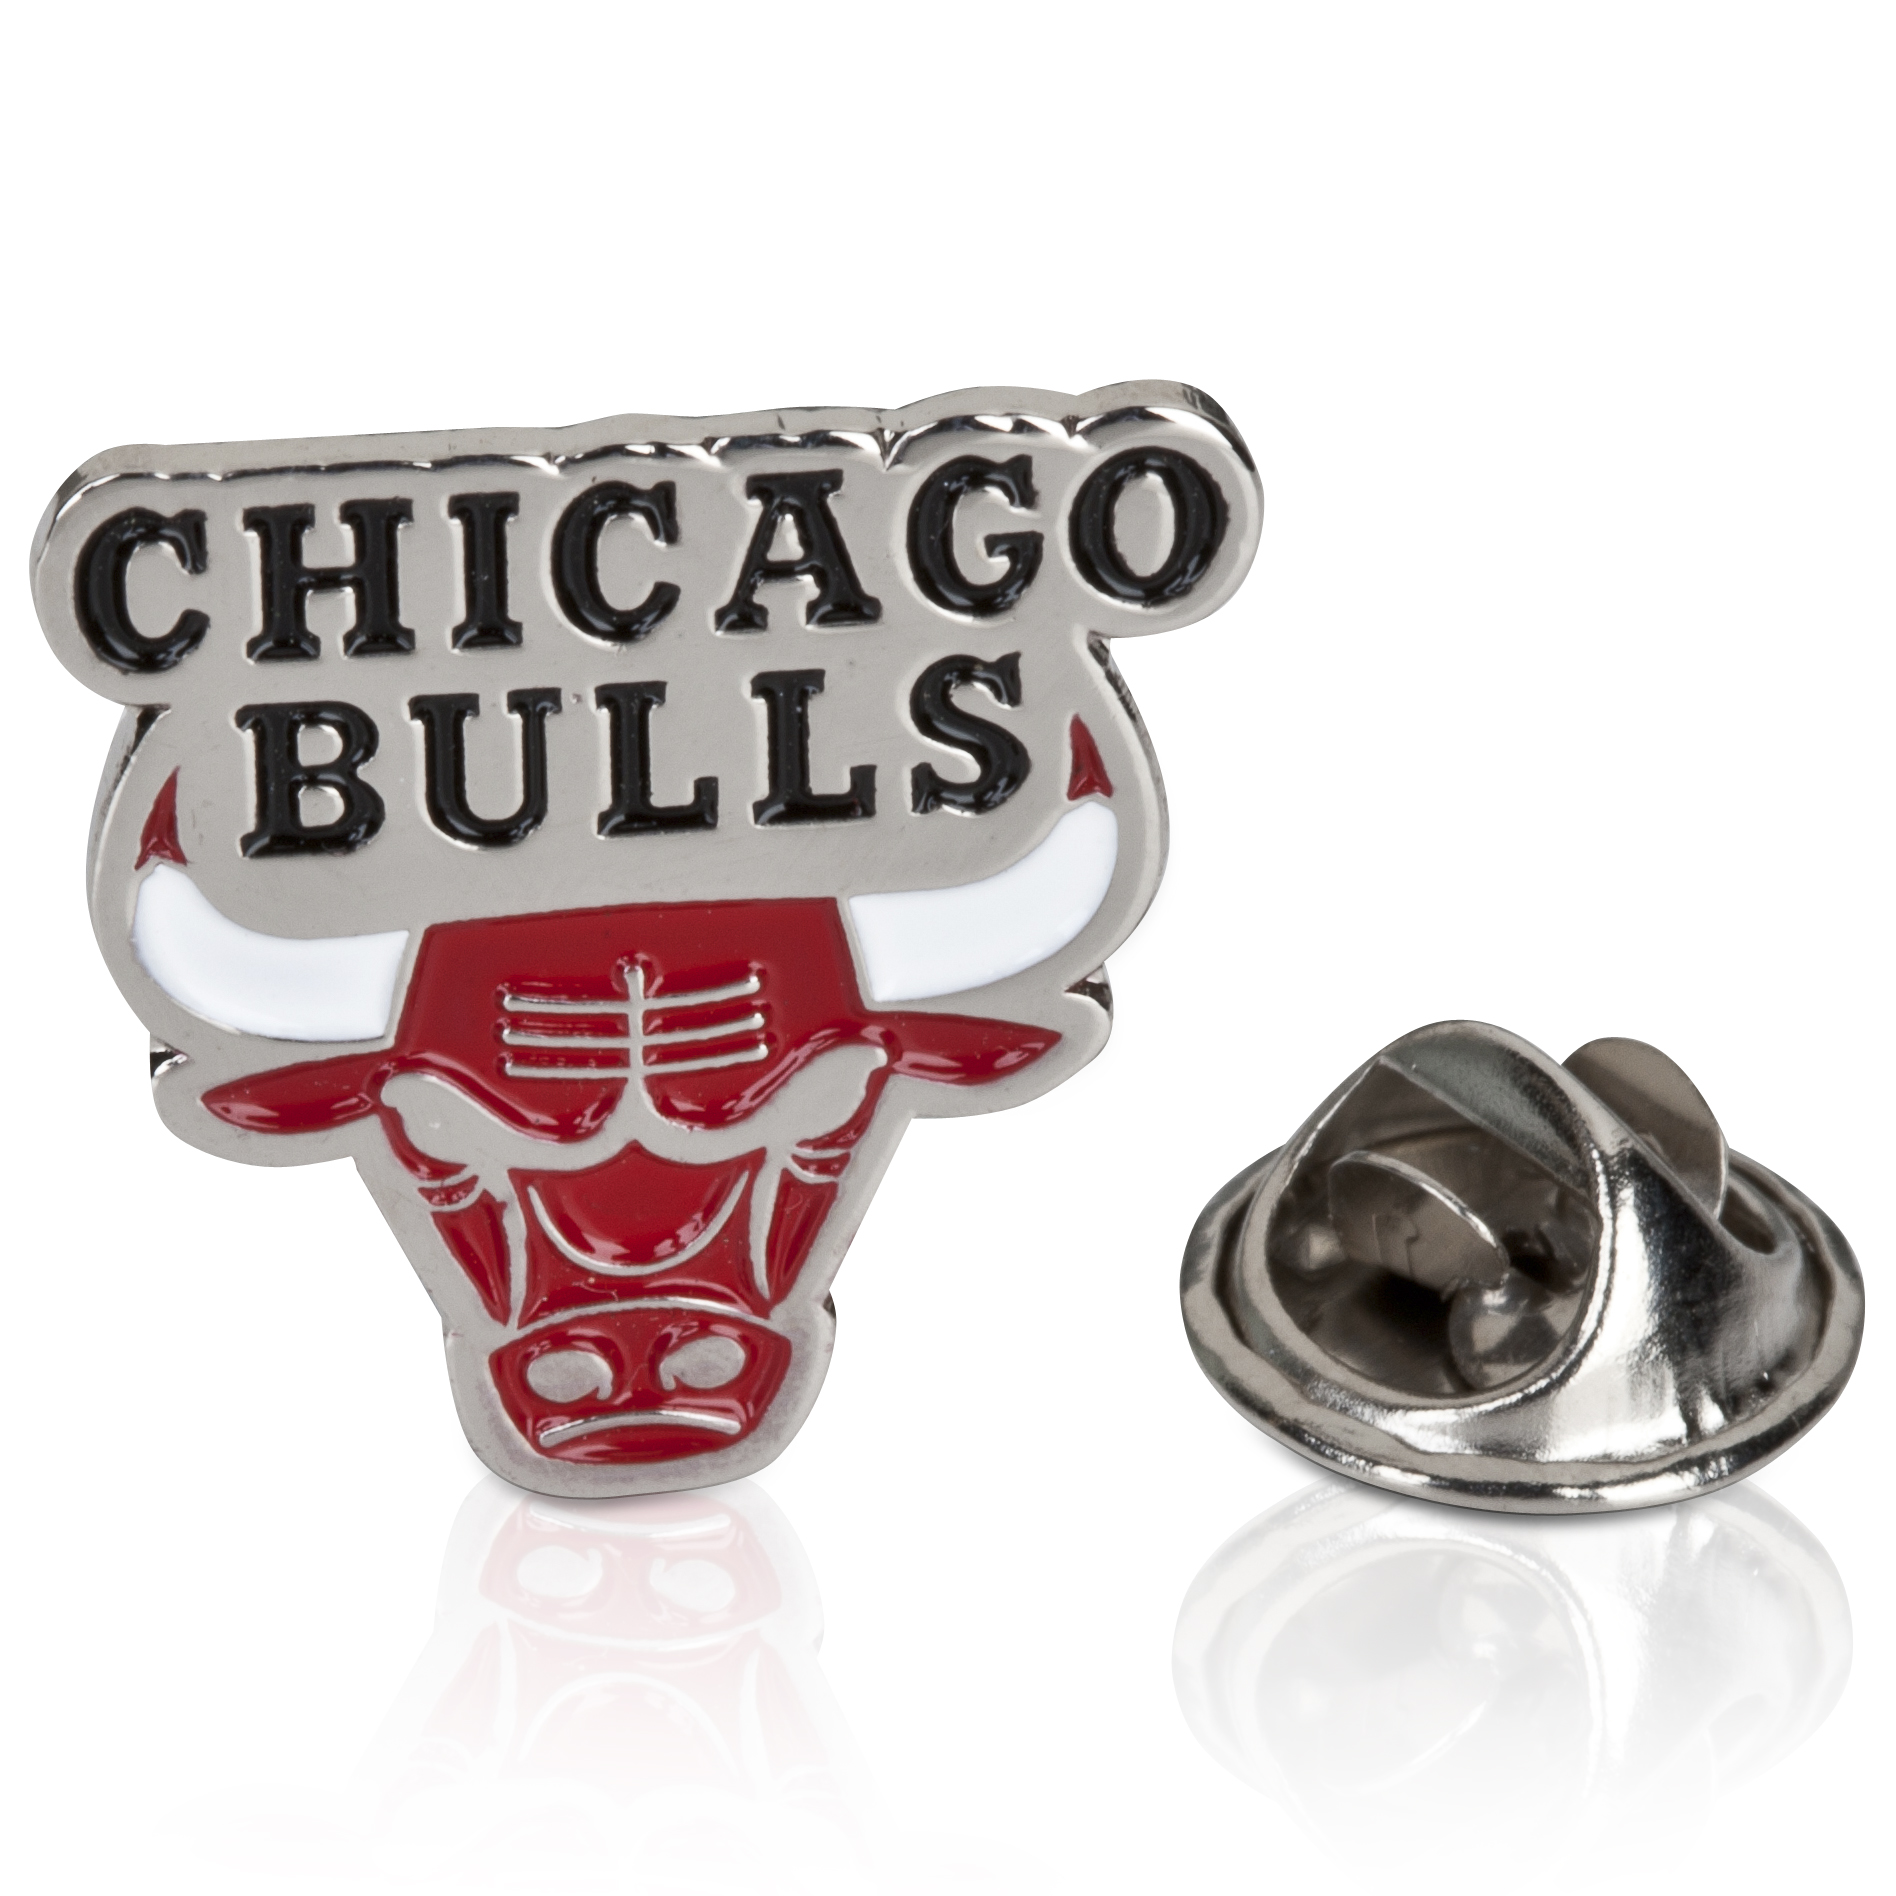 Chicago Bulls Crest Badge